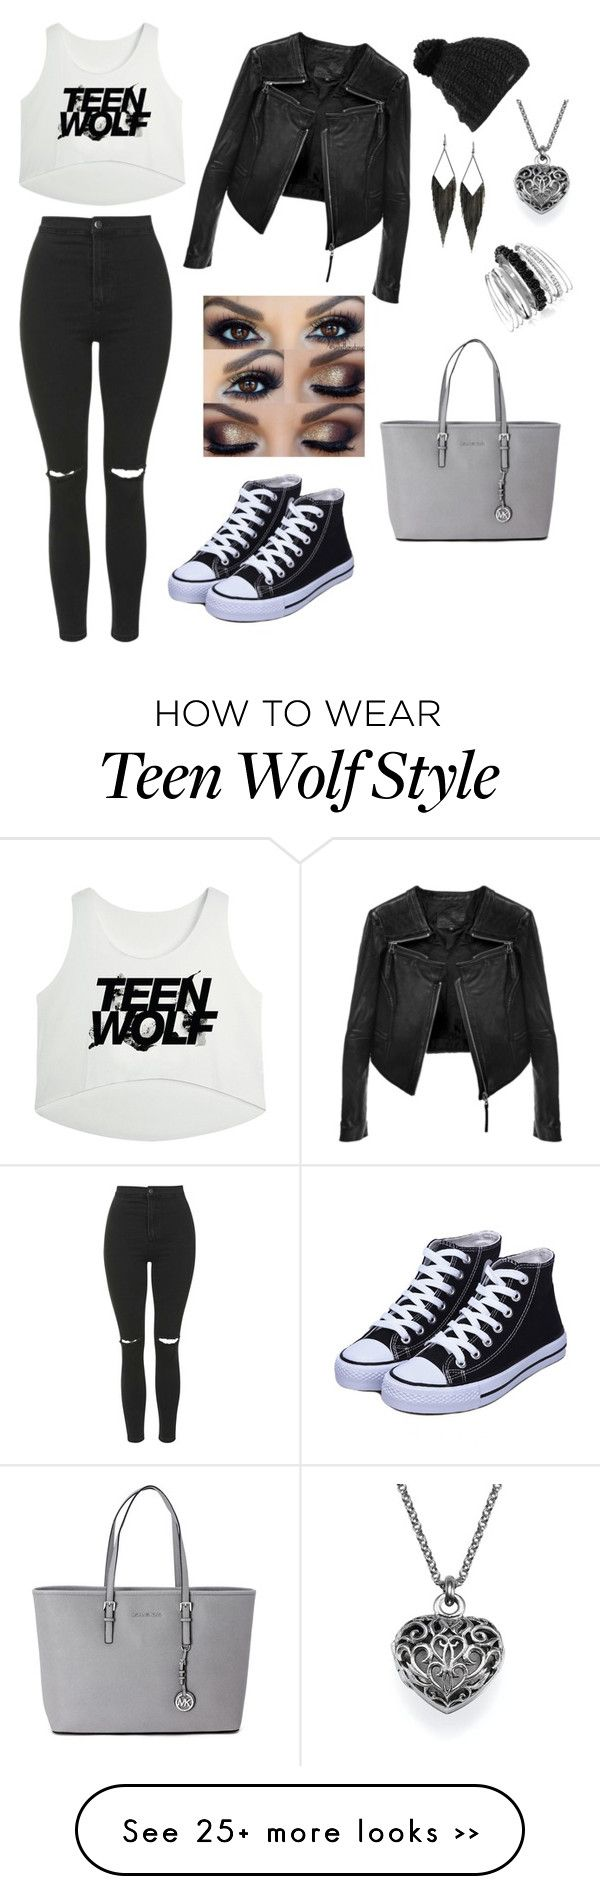 """Teen Wolf Fan Outfit"" by xlaramccall on Polyvore featuring Topshop, Linea Pelle, Burton, GUESS, Avenue and Michael Kors"